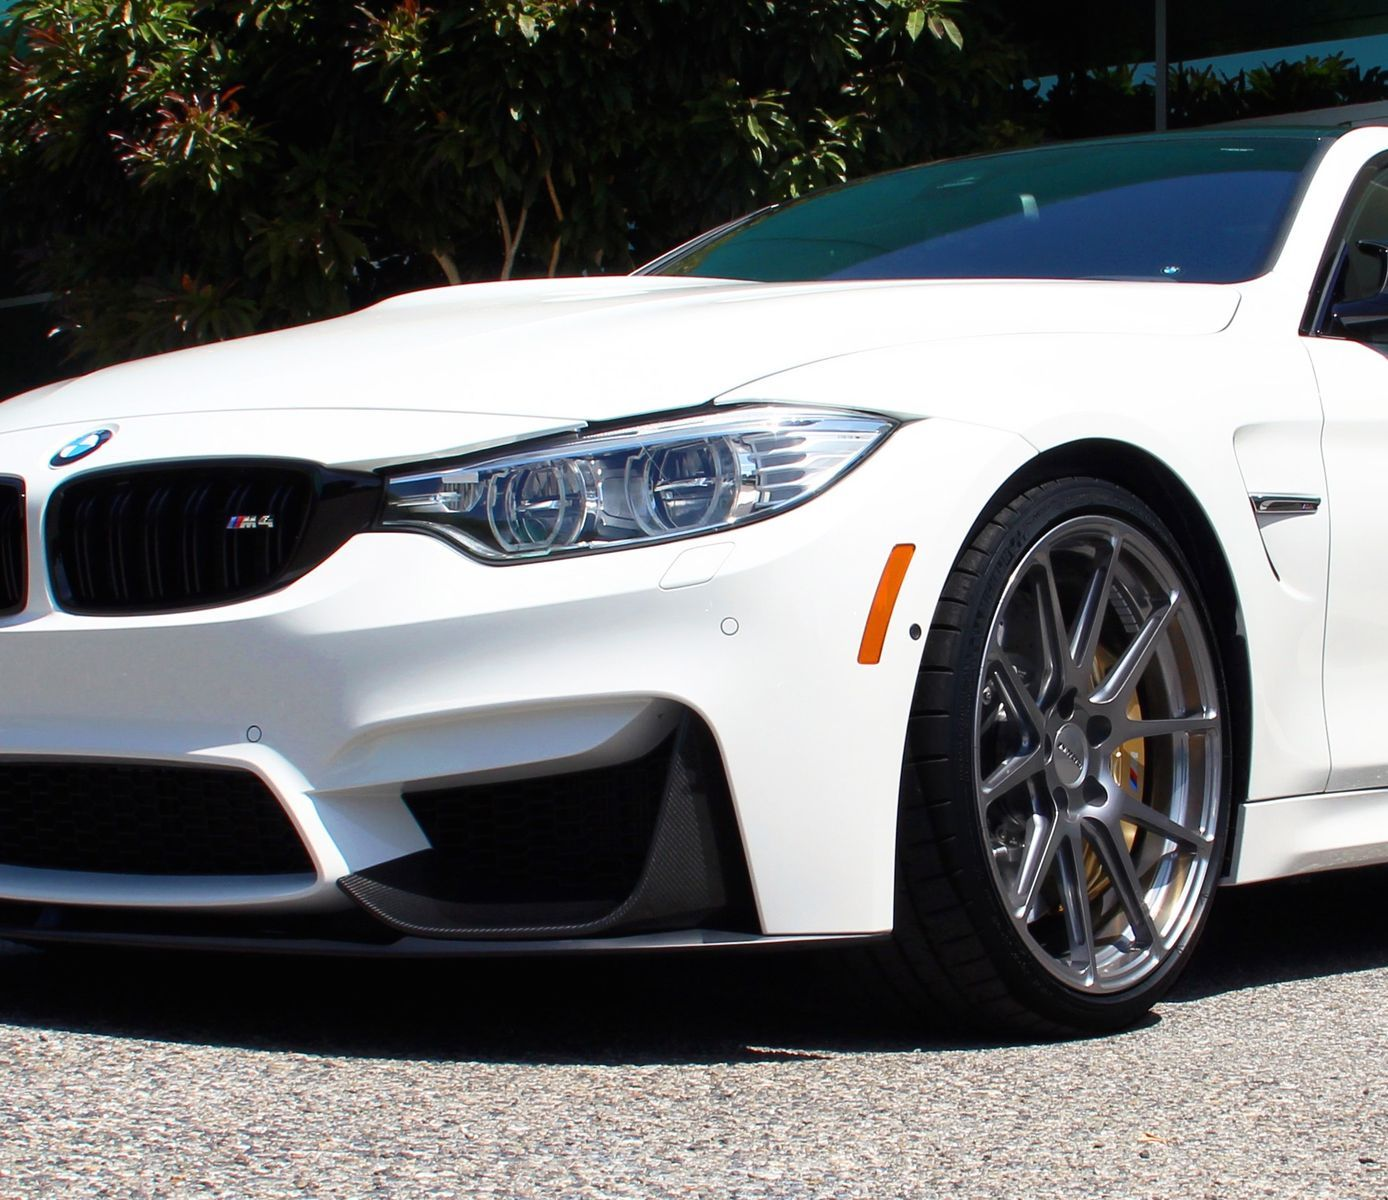 2015 BMW M4 | BMW M4 2015 Car Of Your Dreams on Forgeline GA1R Wheels